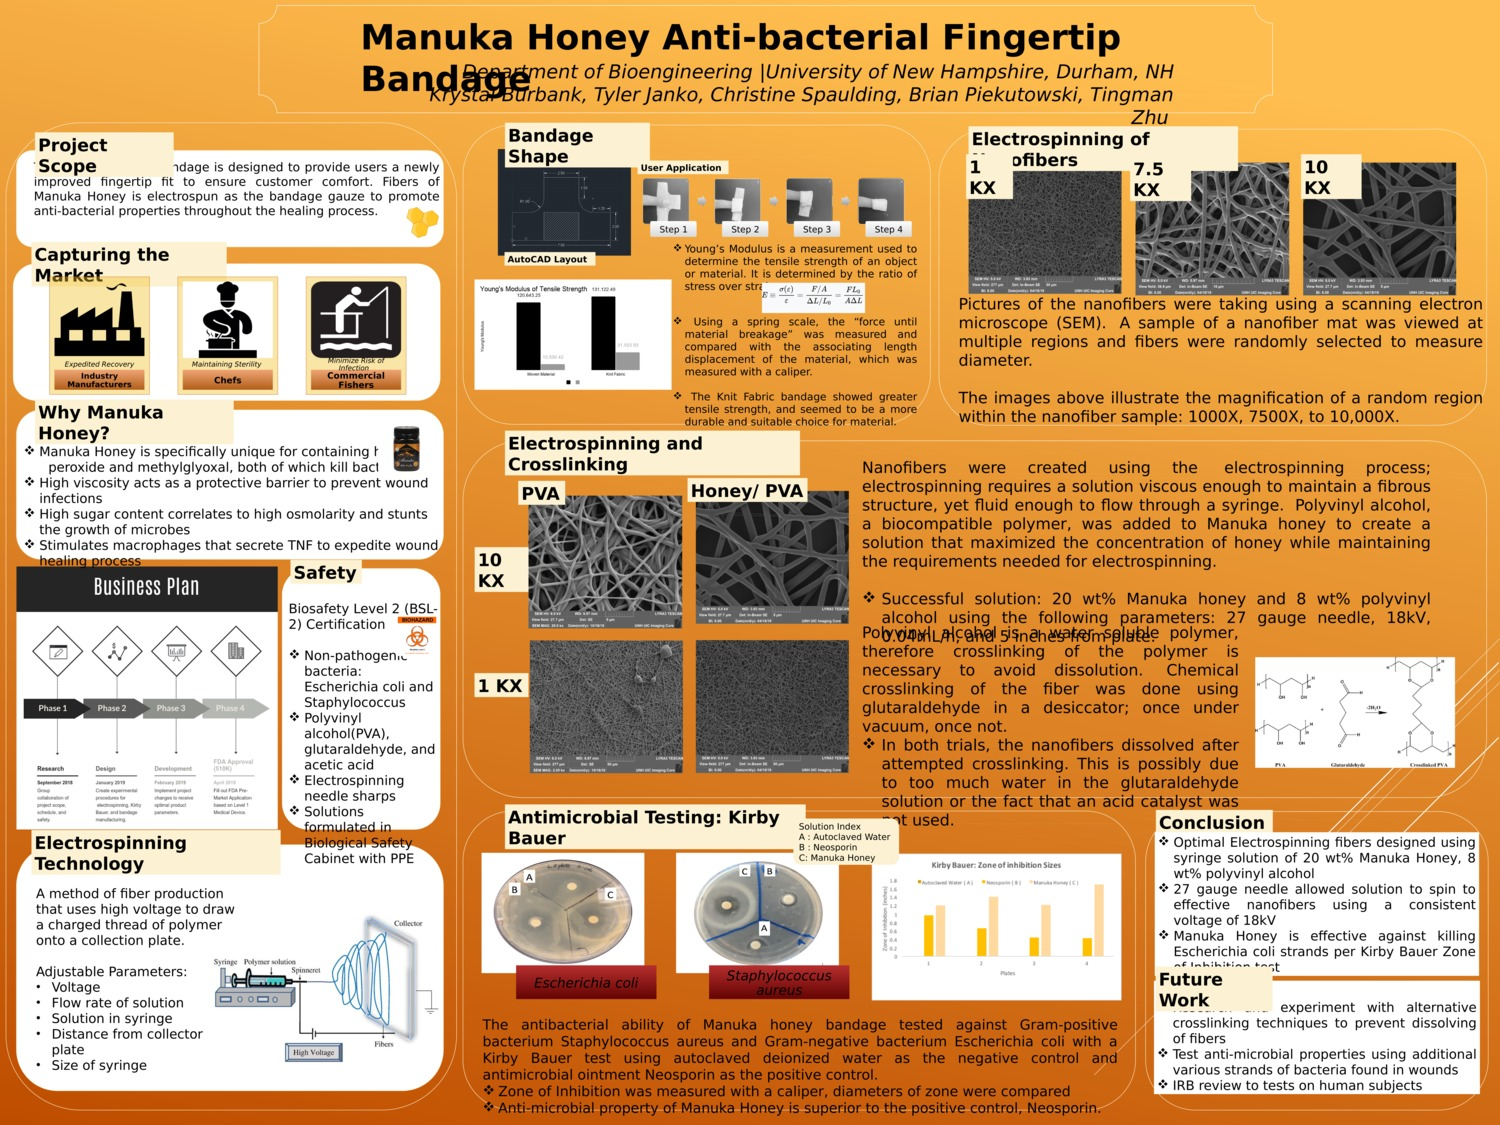 Manuka Honey Anti-Bacterial Fingertip Bandage by KBurbank